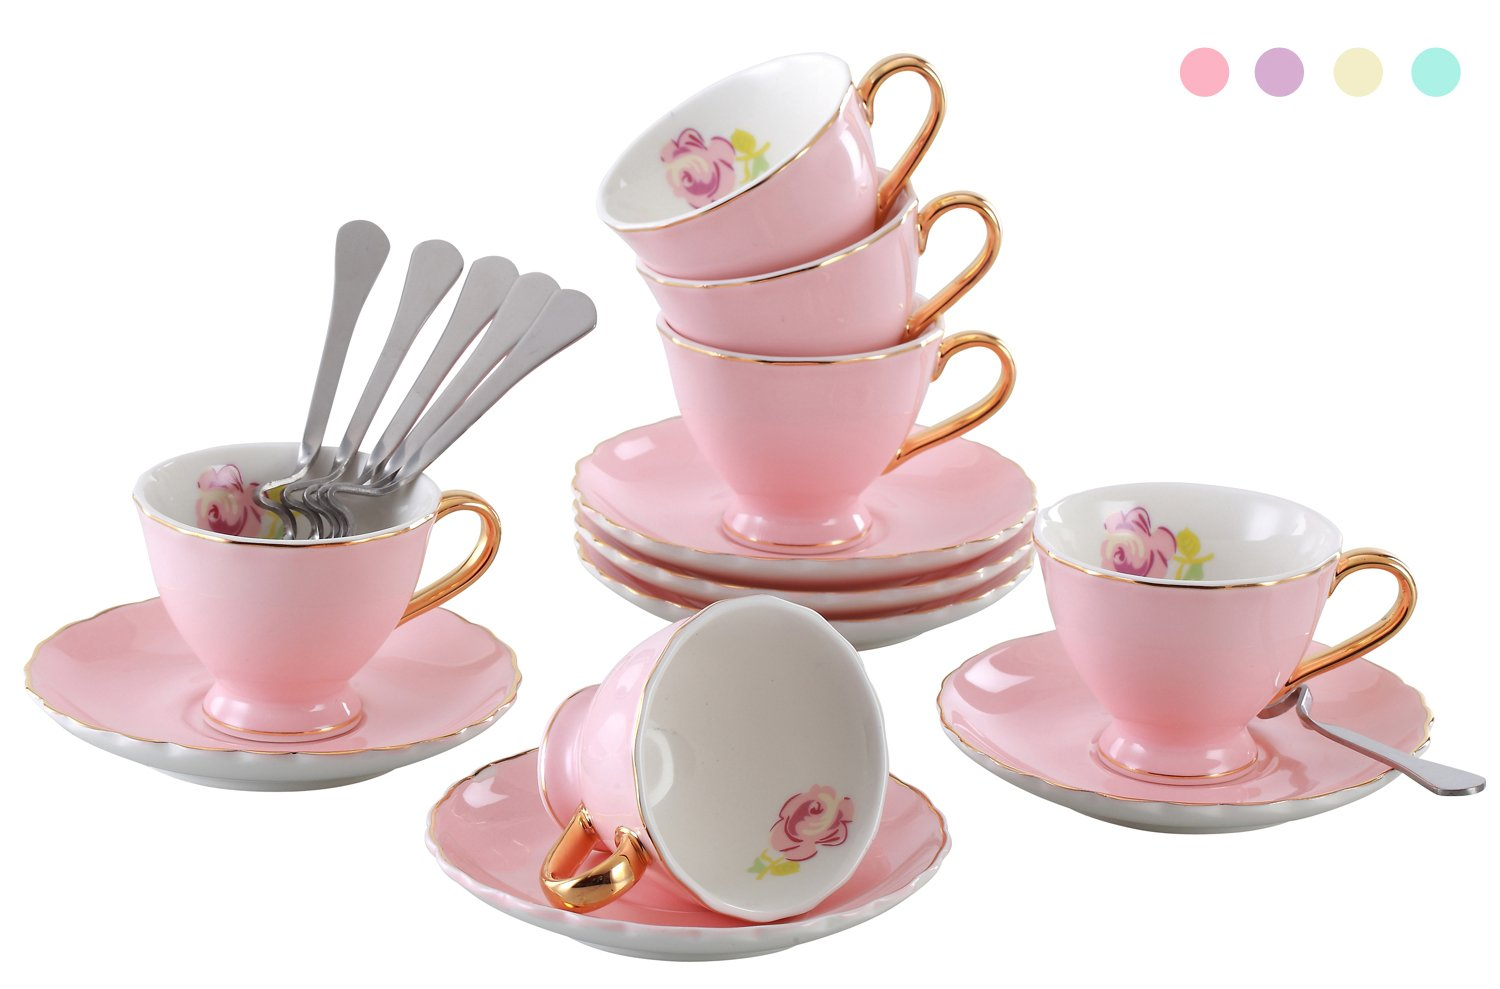 Jusalpha Fine China Coffee Bar Espresso small Cups and Saucers Set, 3-Ounce FD-TCS02 (Set of 6, Pink) SYNCHKG072124